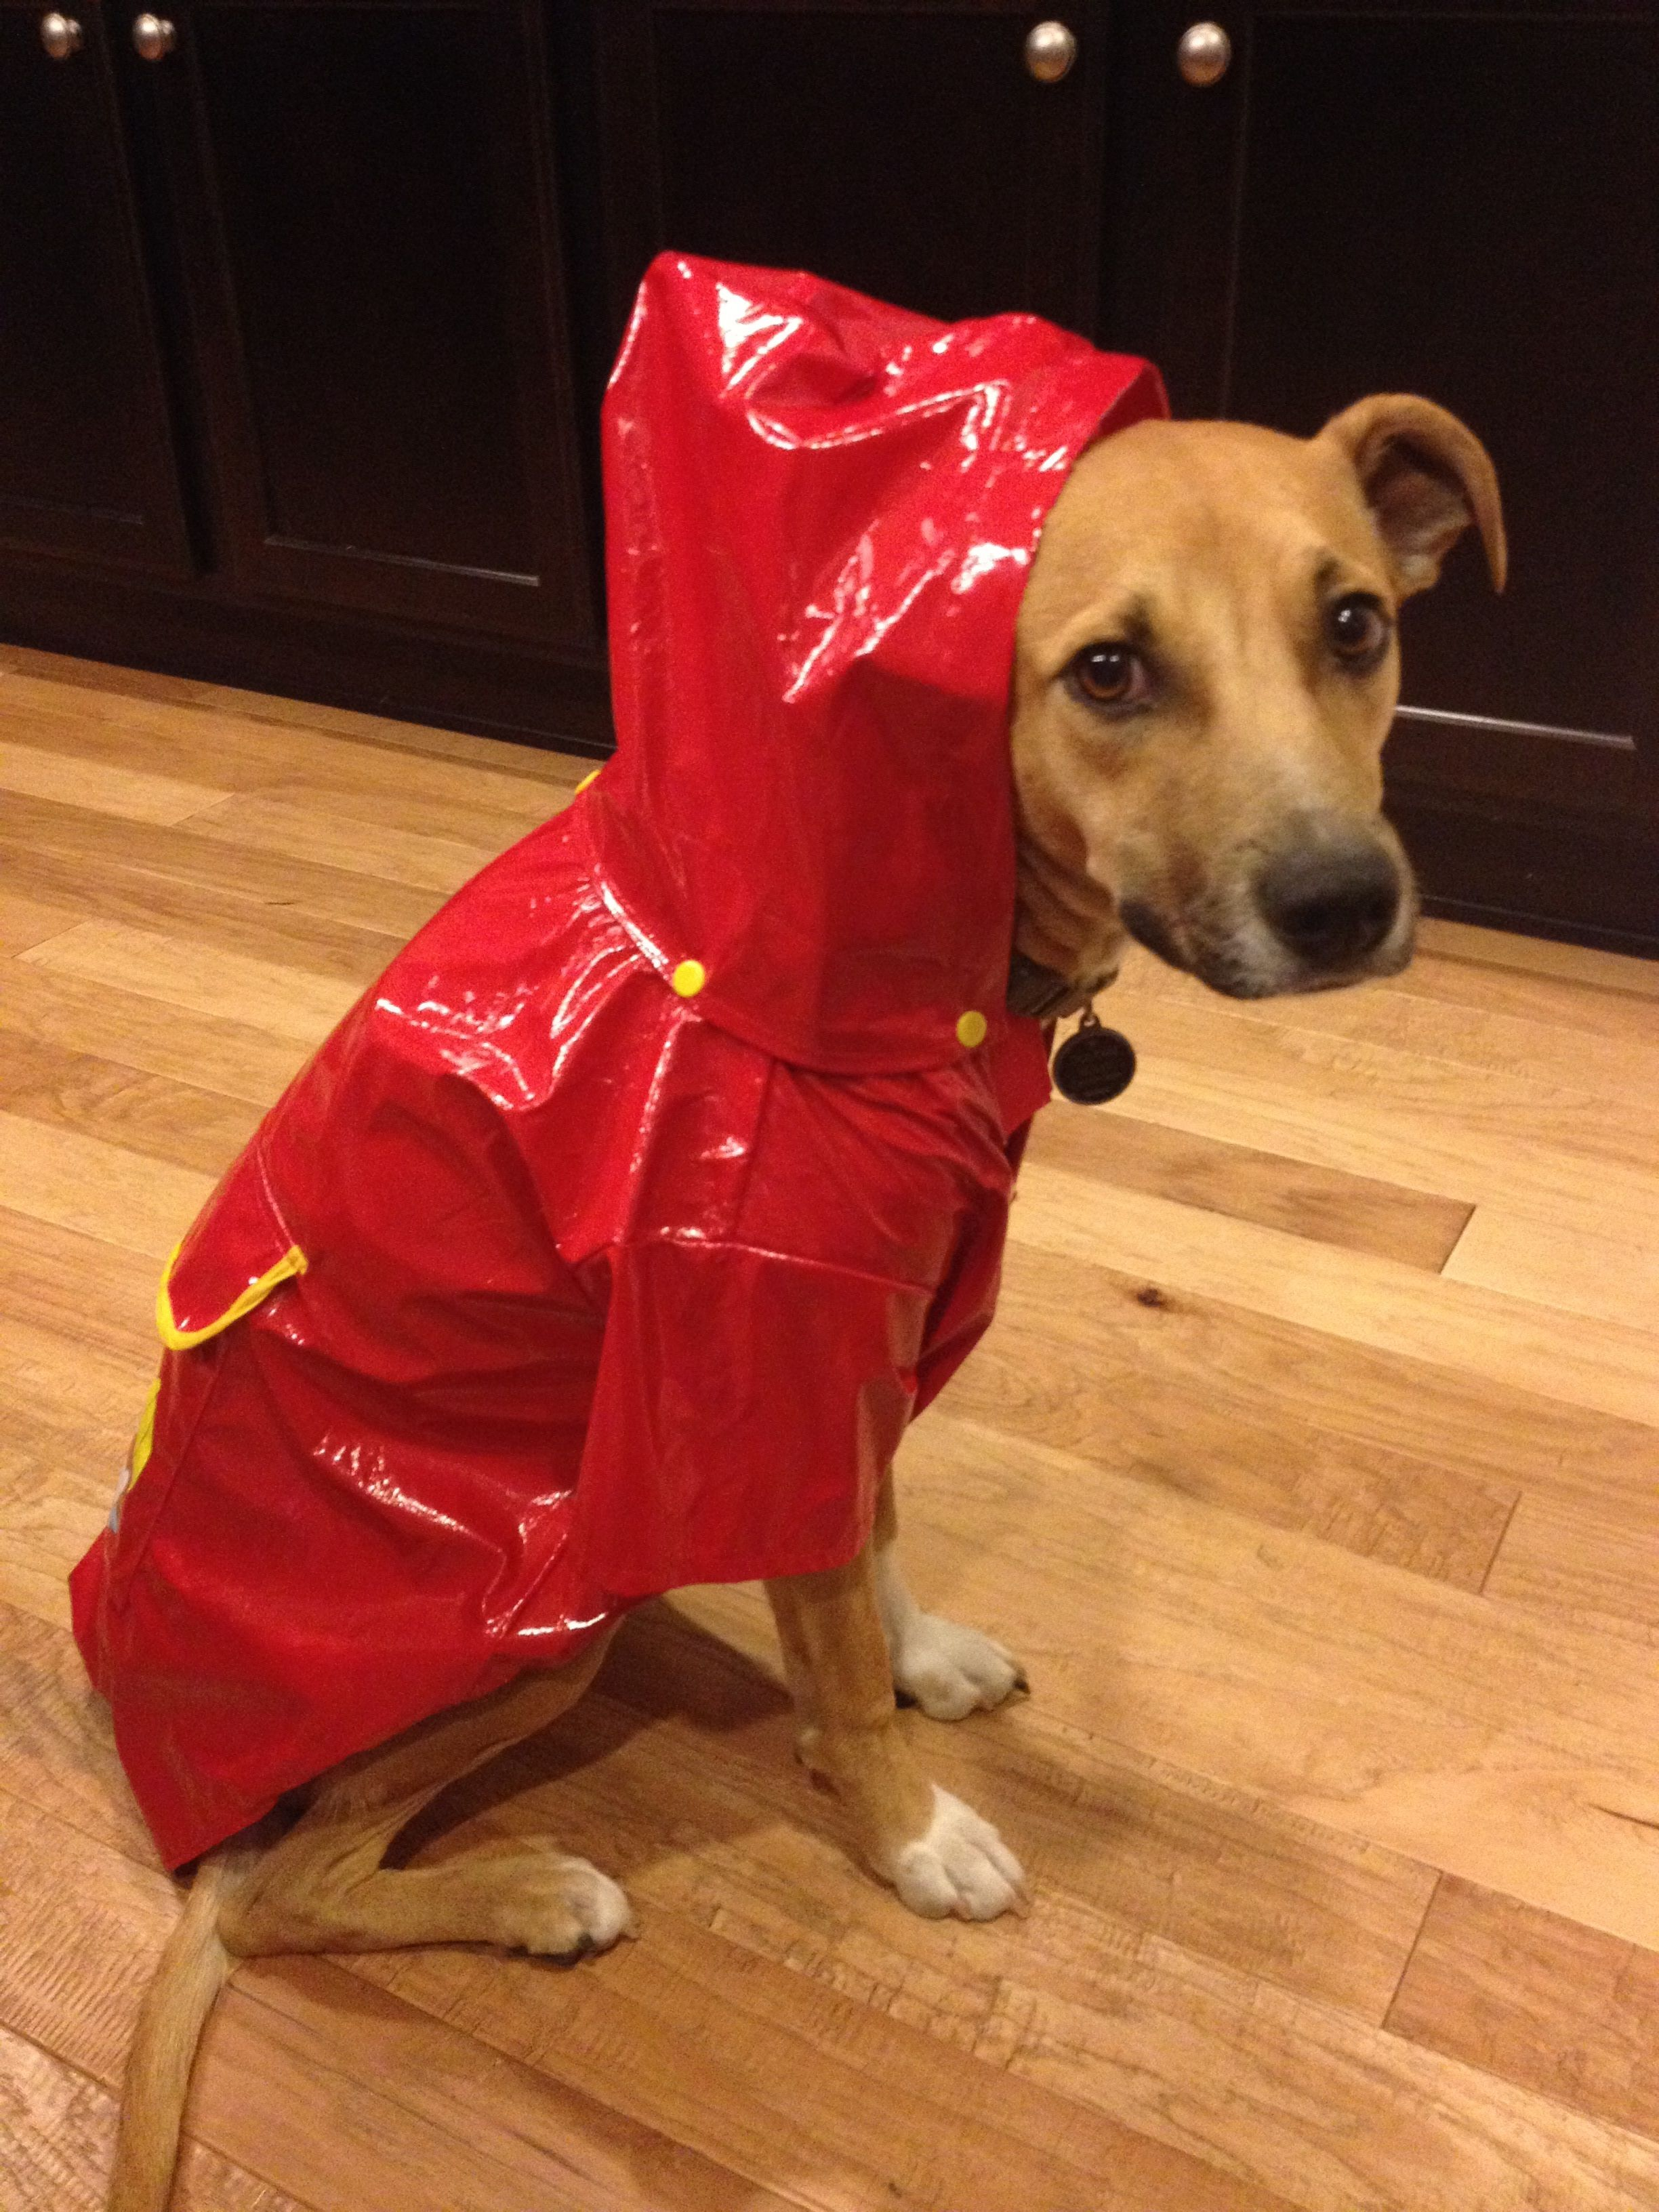 This Is What Happens When Your Dog Refuses To Go Potty In The Rain Your Dog Furry Friend Paper Shopping Bag